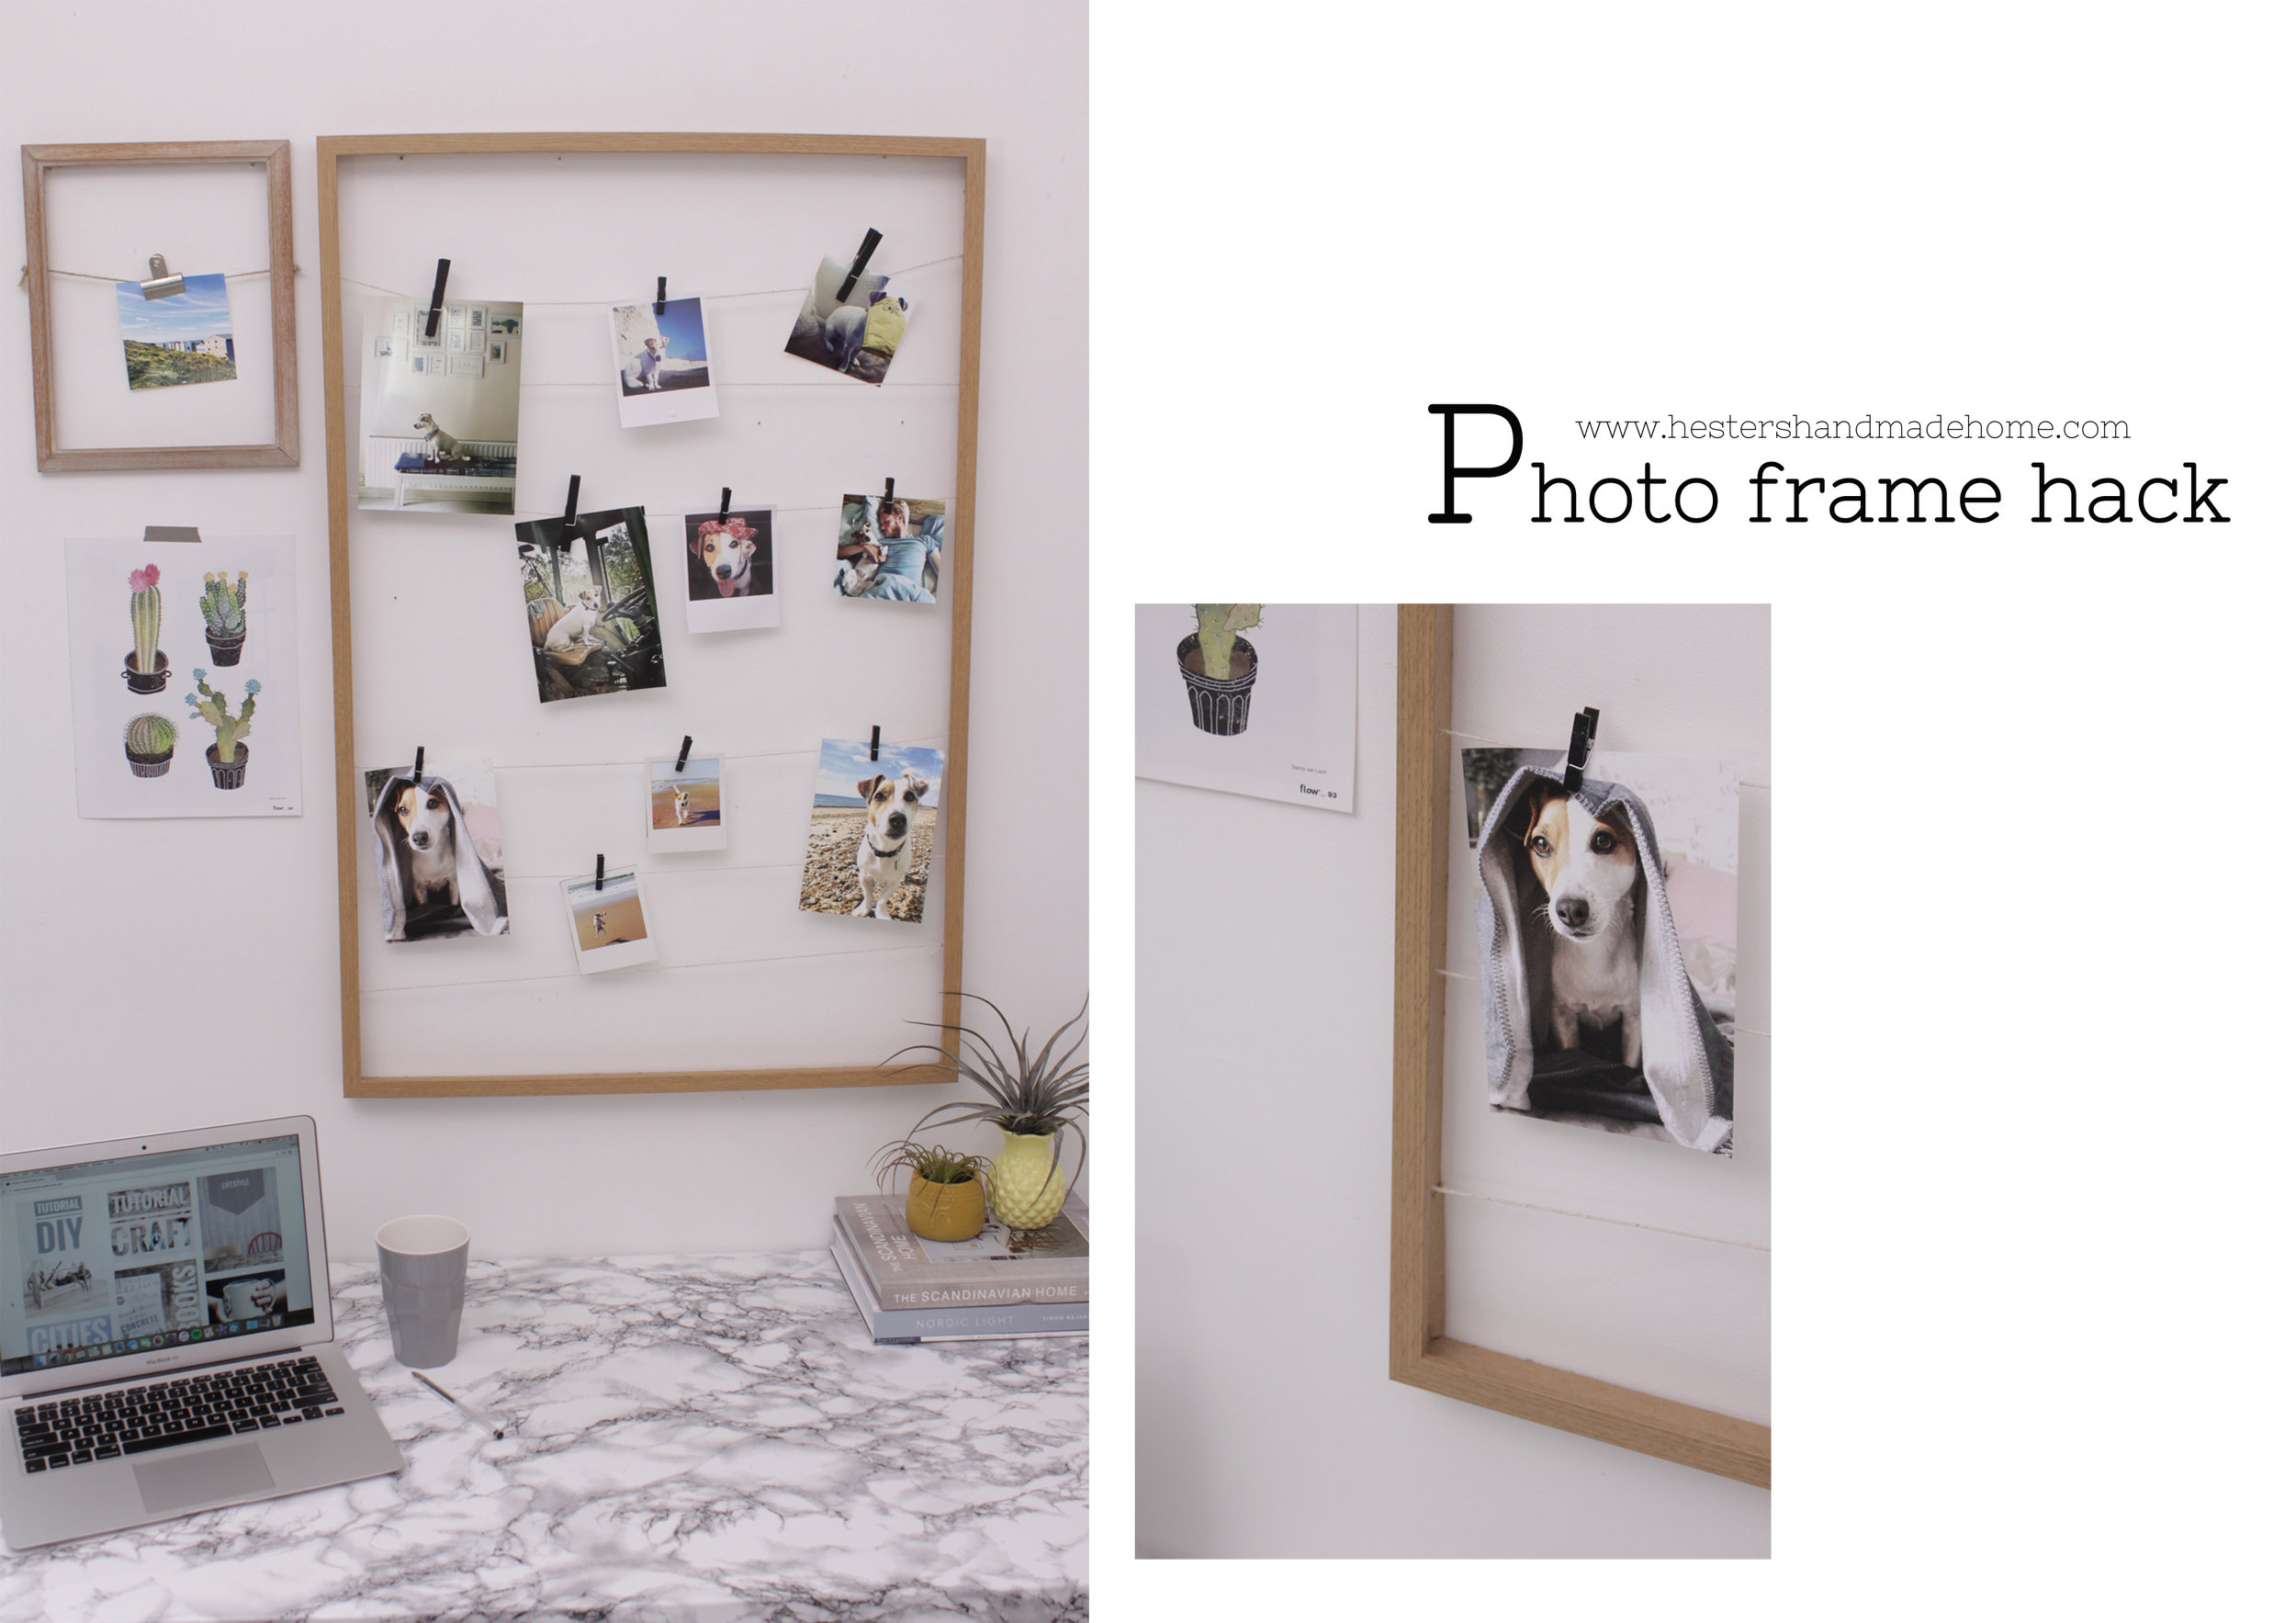 Photo frame hack by www.hestershandmadehome.com